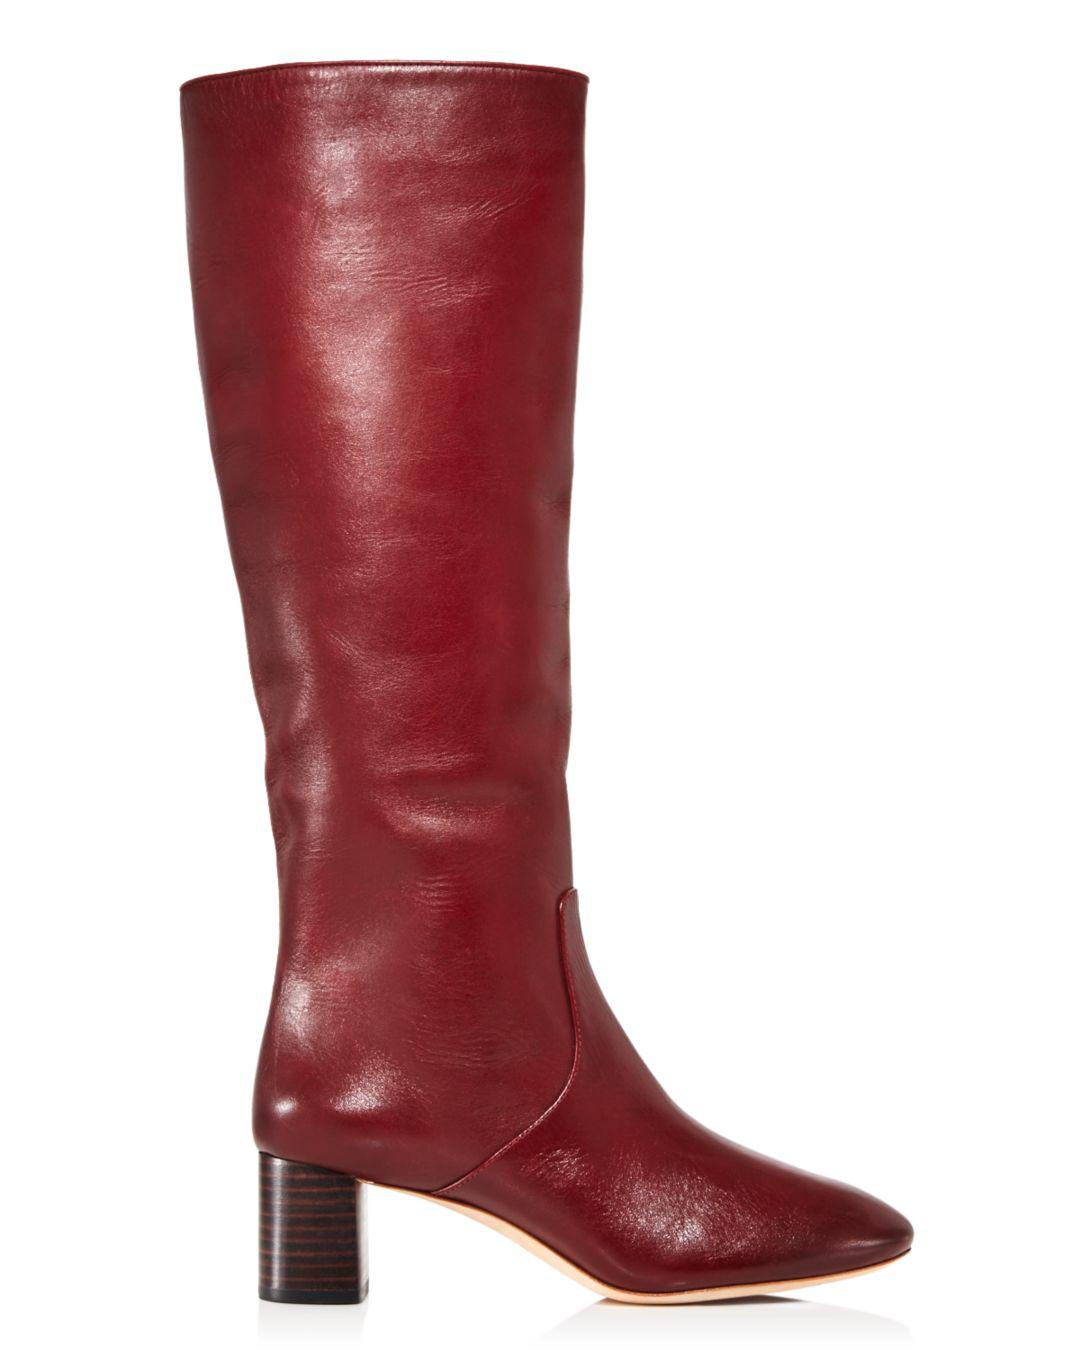 58fbfc7e9f0b Loeffler Randall. Red Women s Gia Pointed Toe Knee-high Leather Mid-heel  Boots